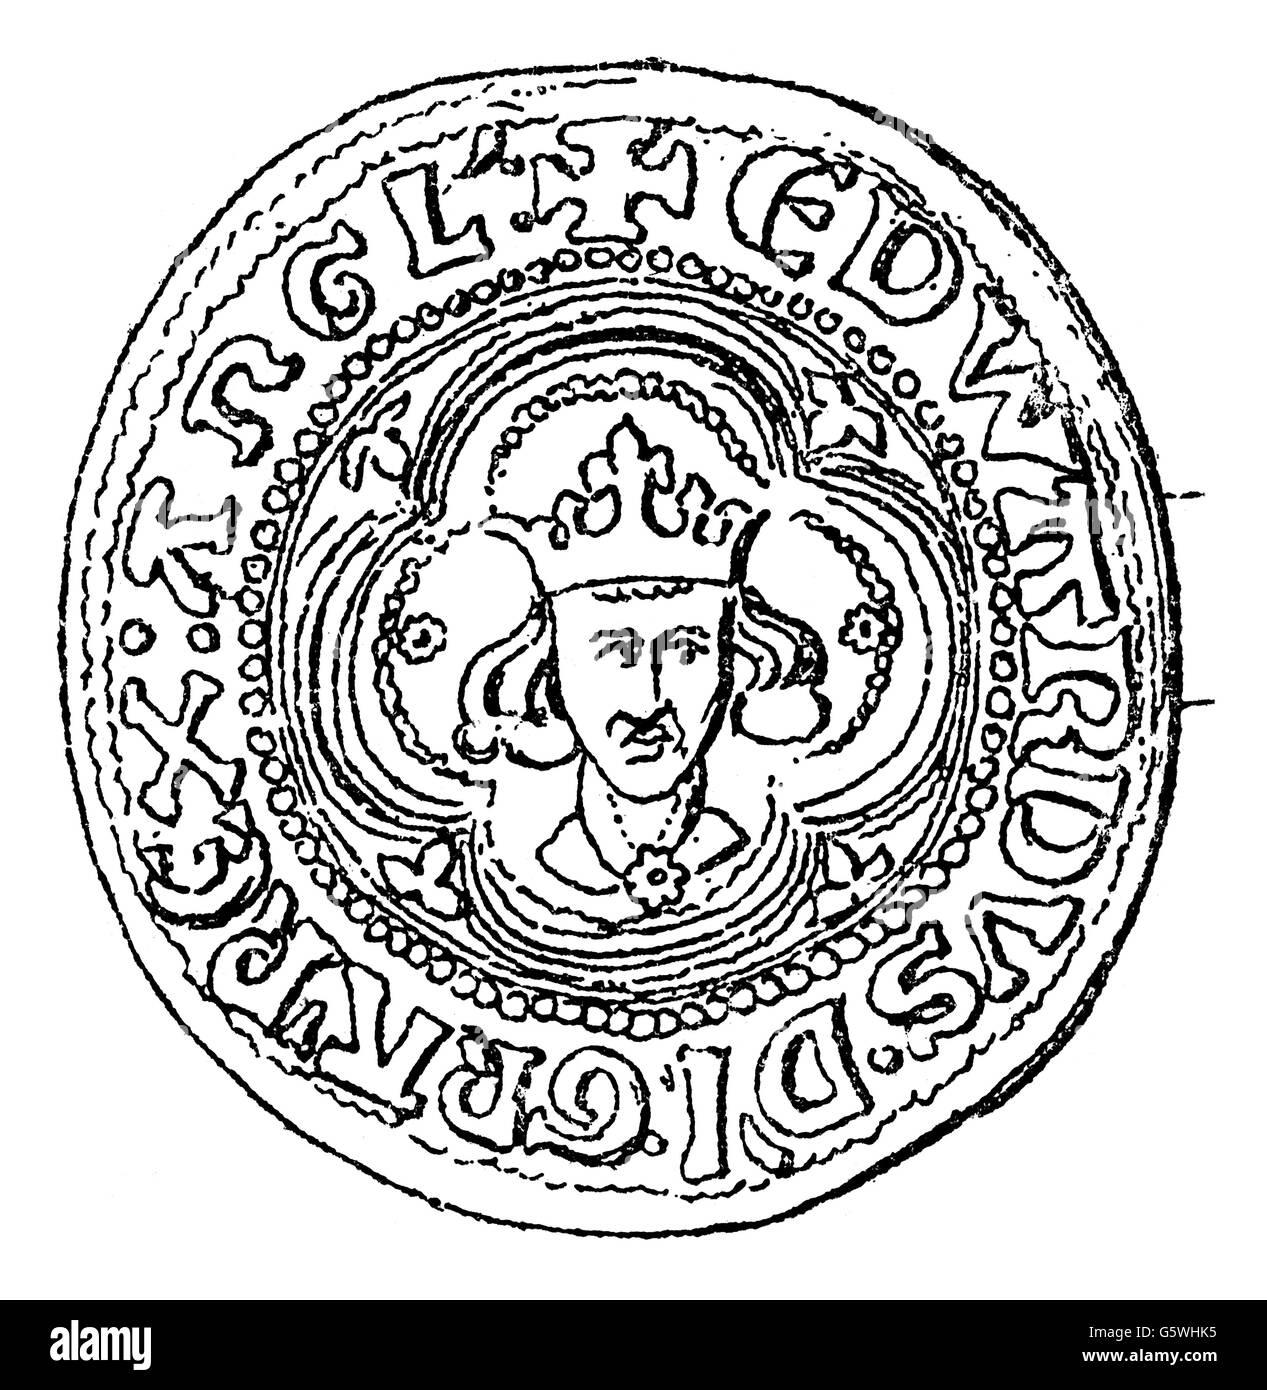 money / finances, coins, Great Britain, Groat, minted in the period of King Edward I of England (1272 - 1307), obverse, - Stock Image